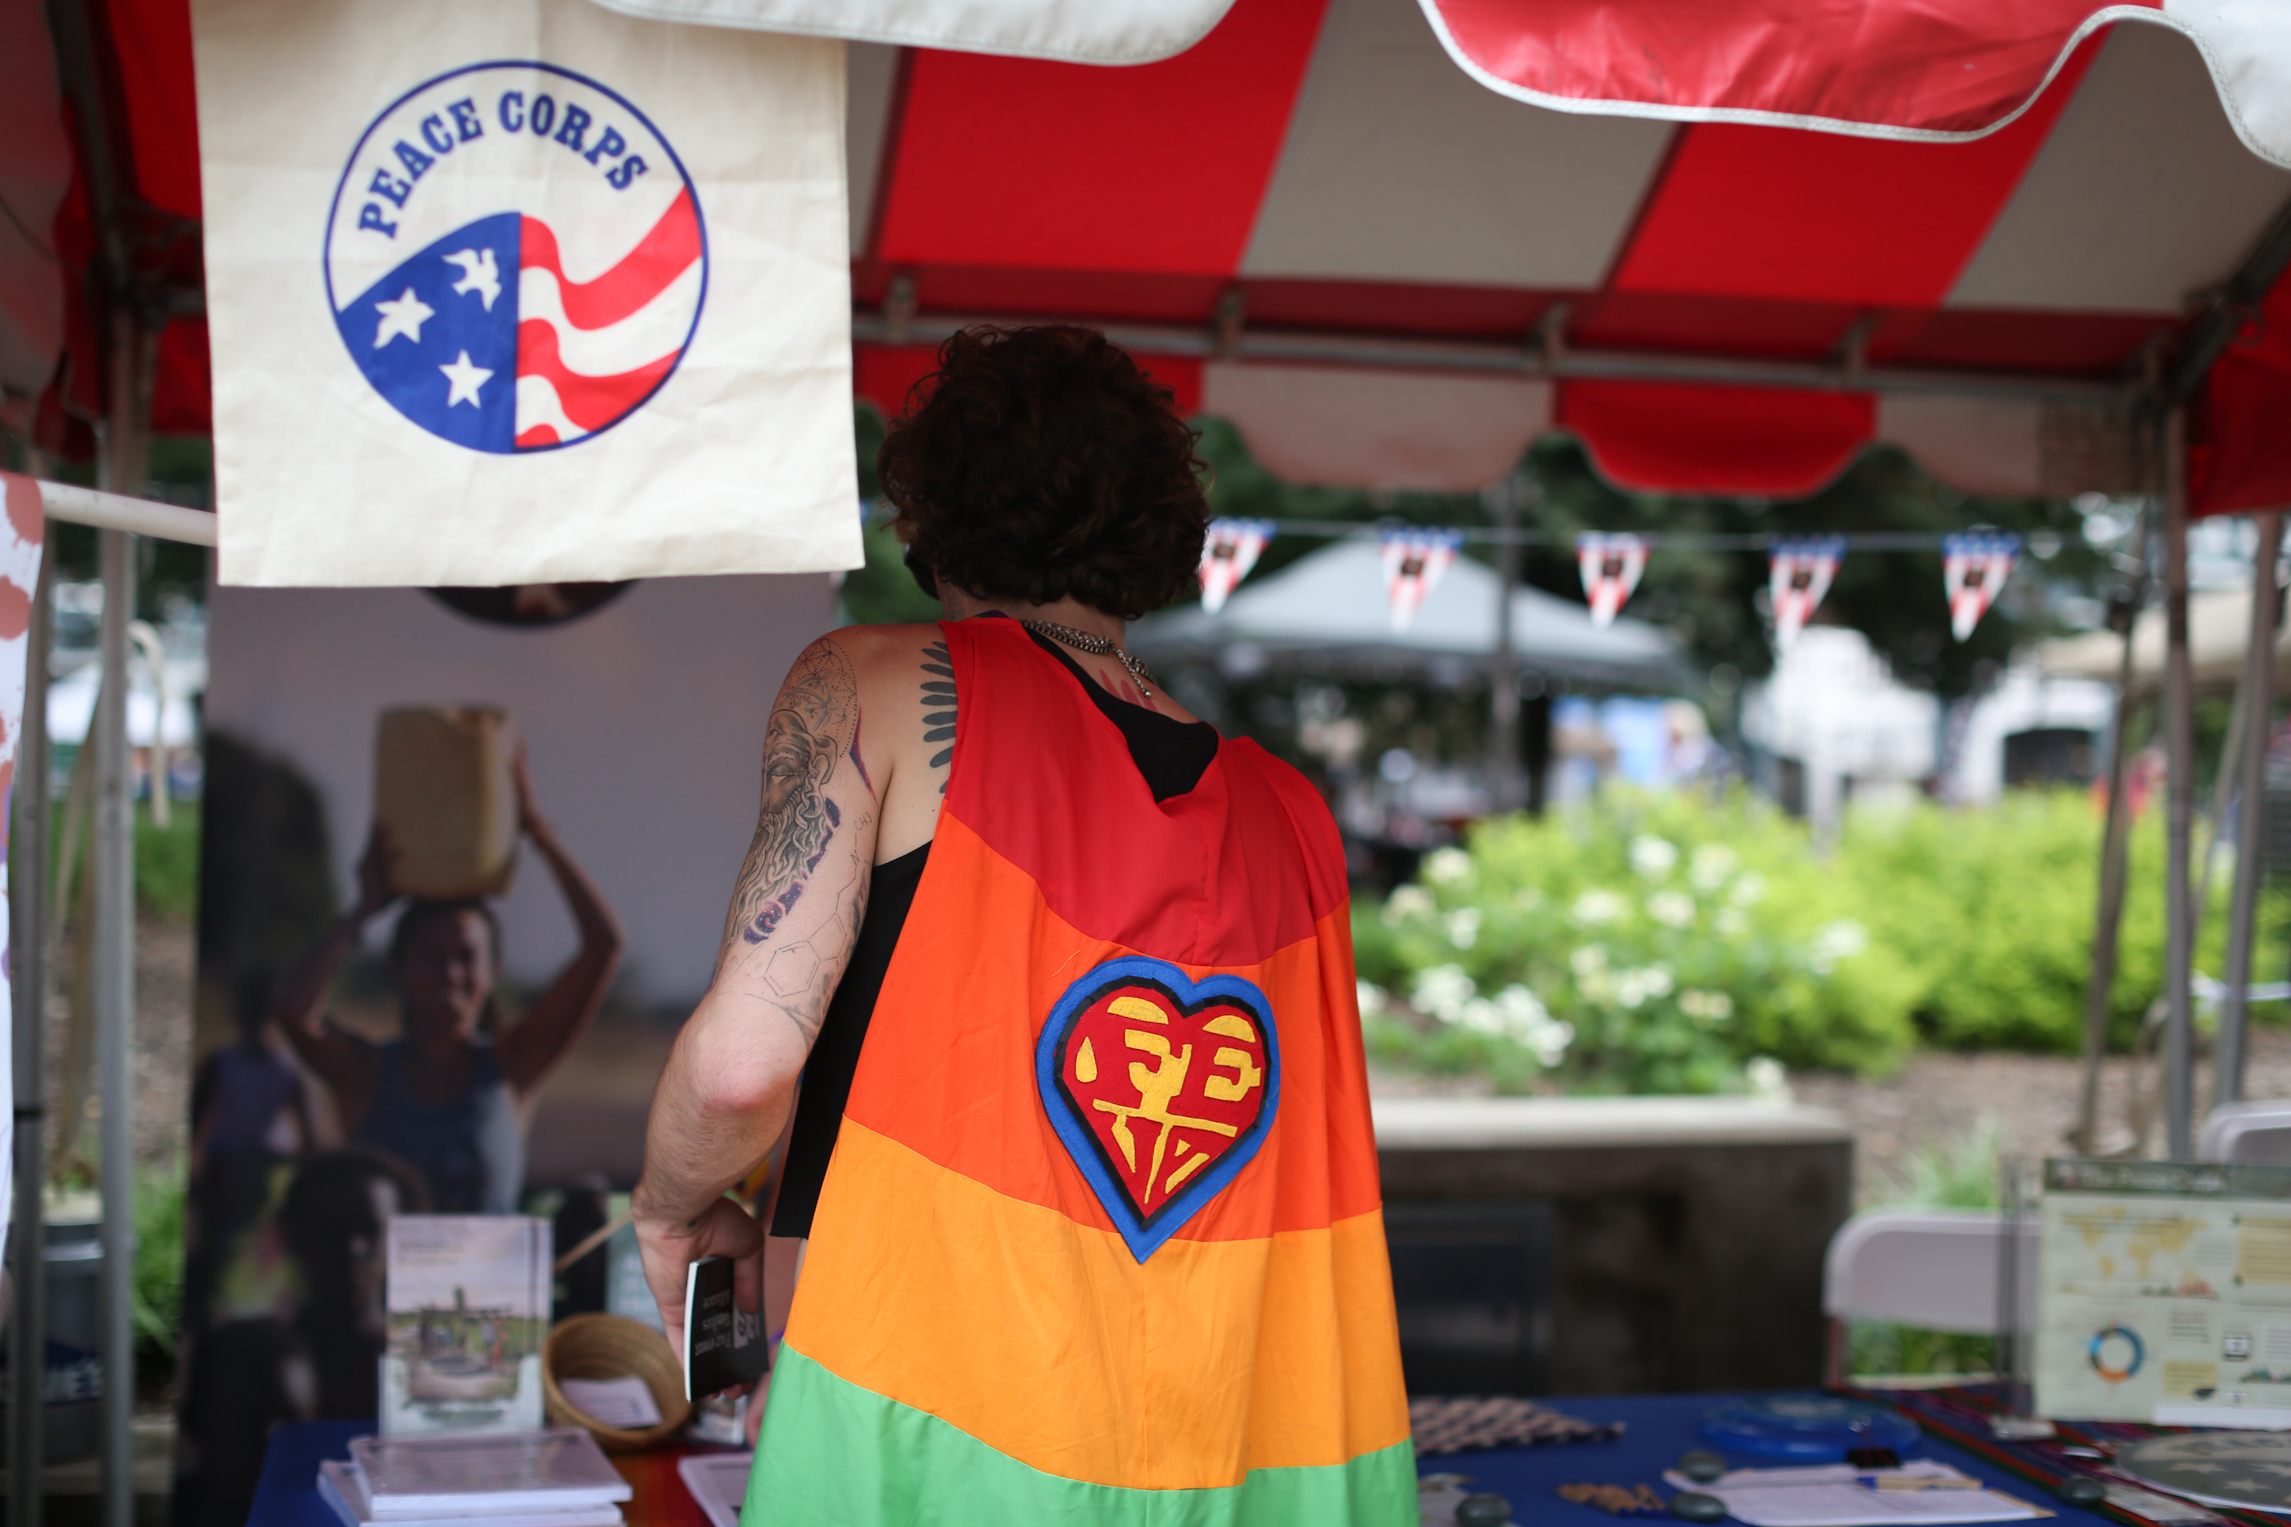 PRIDE W-FEVA 2015 EDITED CRYSTAL LUDWICK PHOTO (37 of 83).jpg